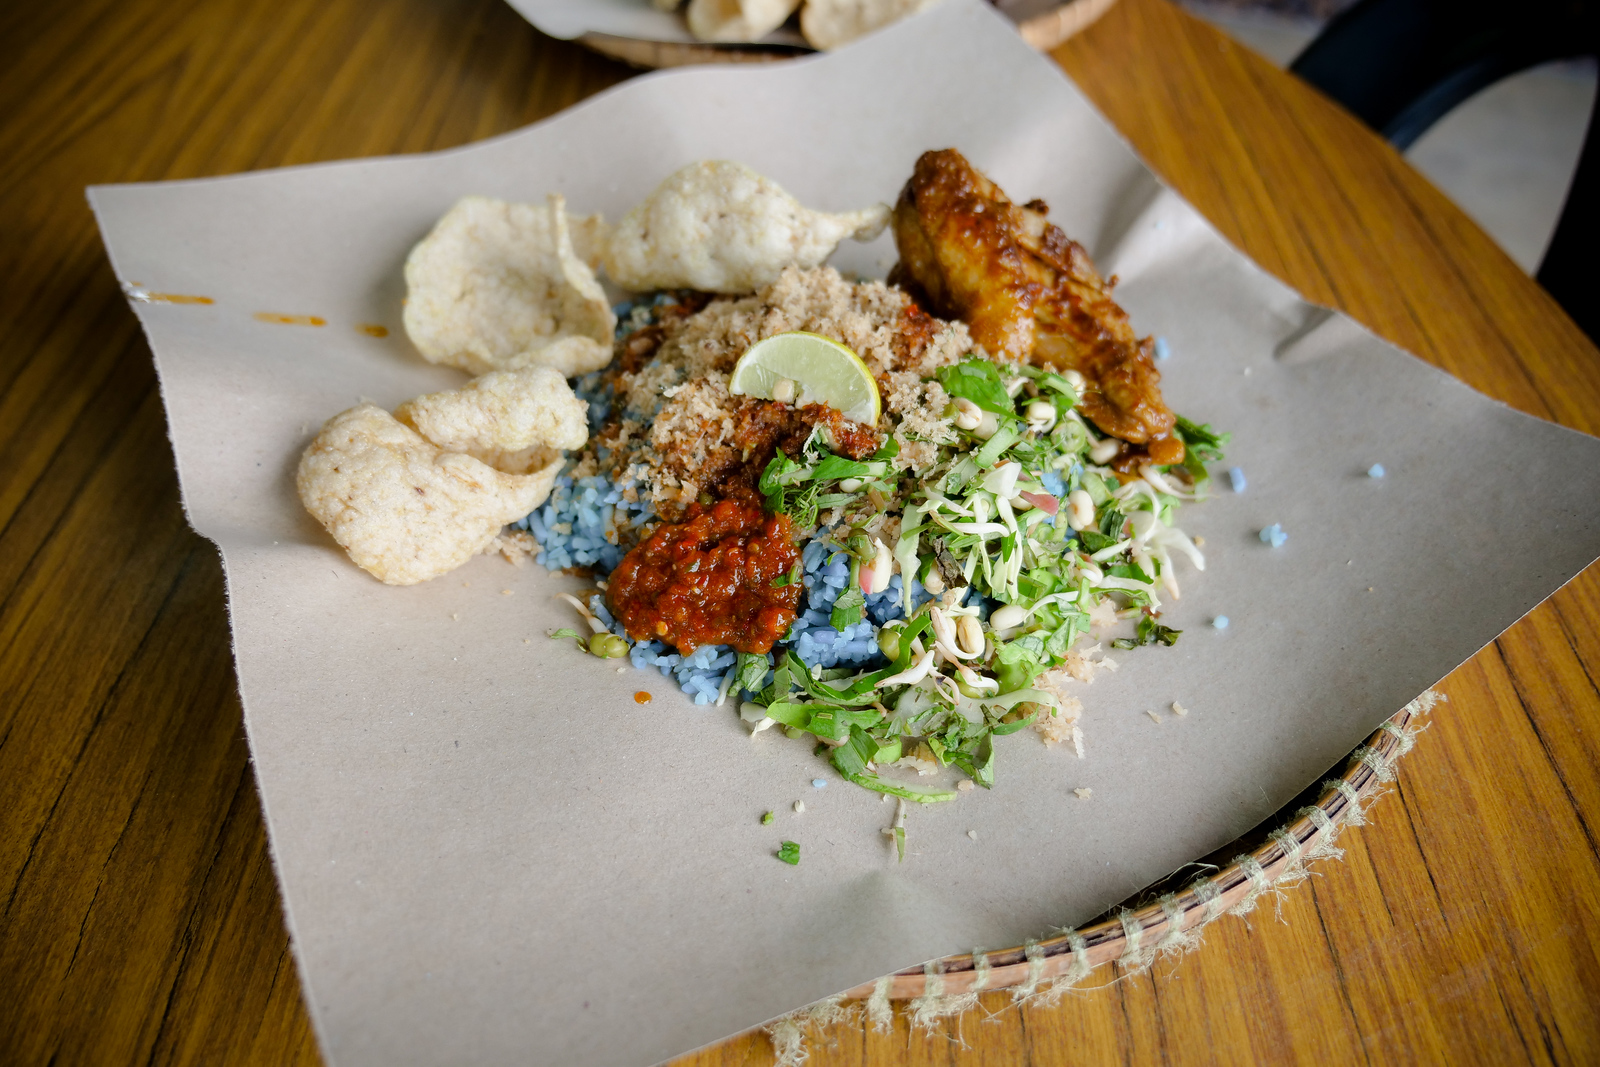 Colorful ingredients and deliciously smoky meat aromas make Nasi Kerabu one of the must-try dishes on any trip to Kelantan, Malaysia